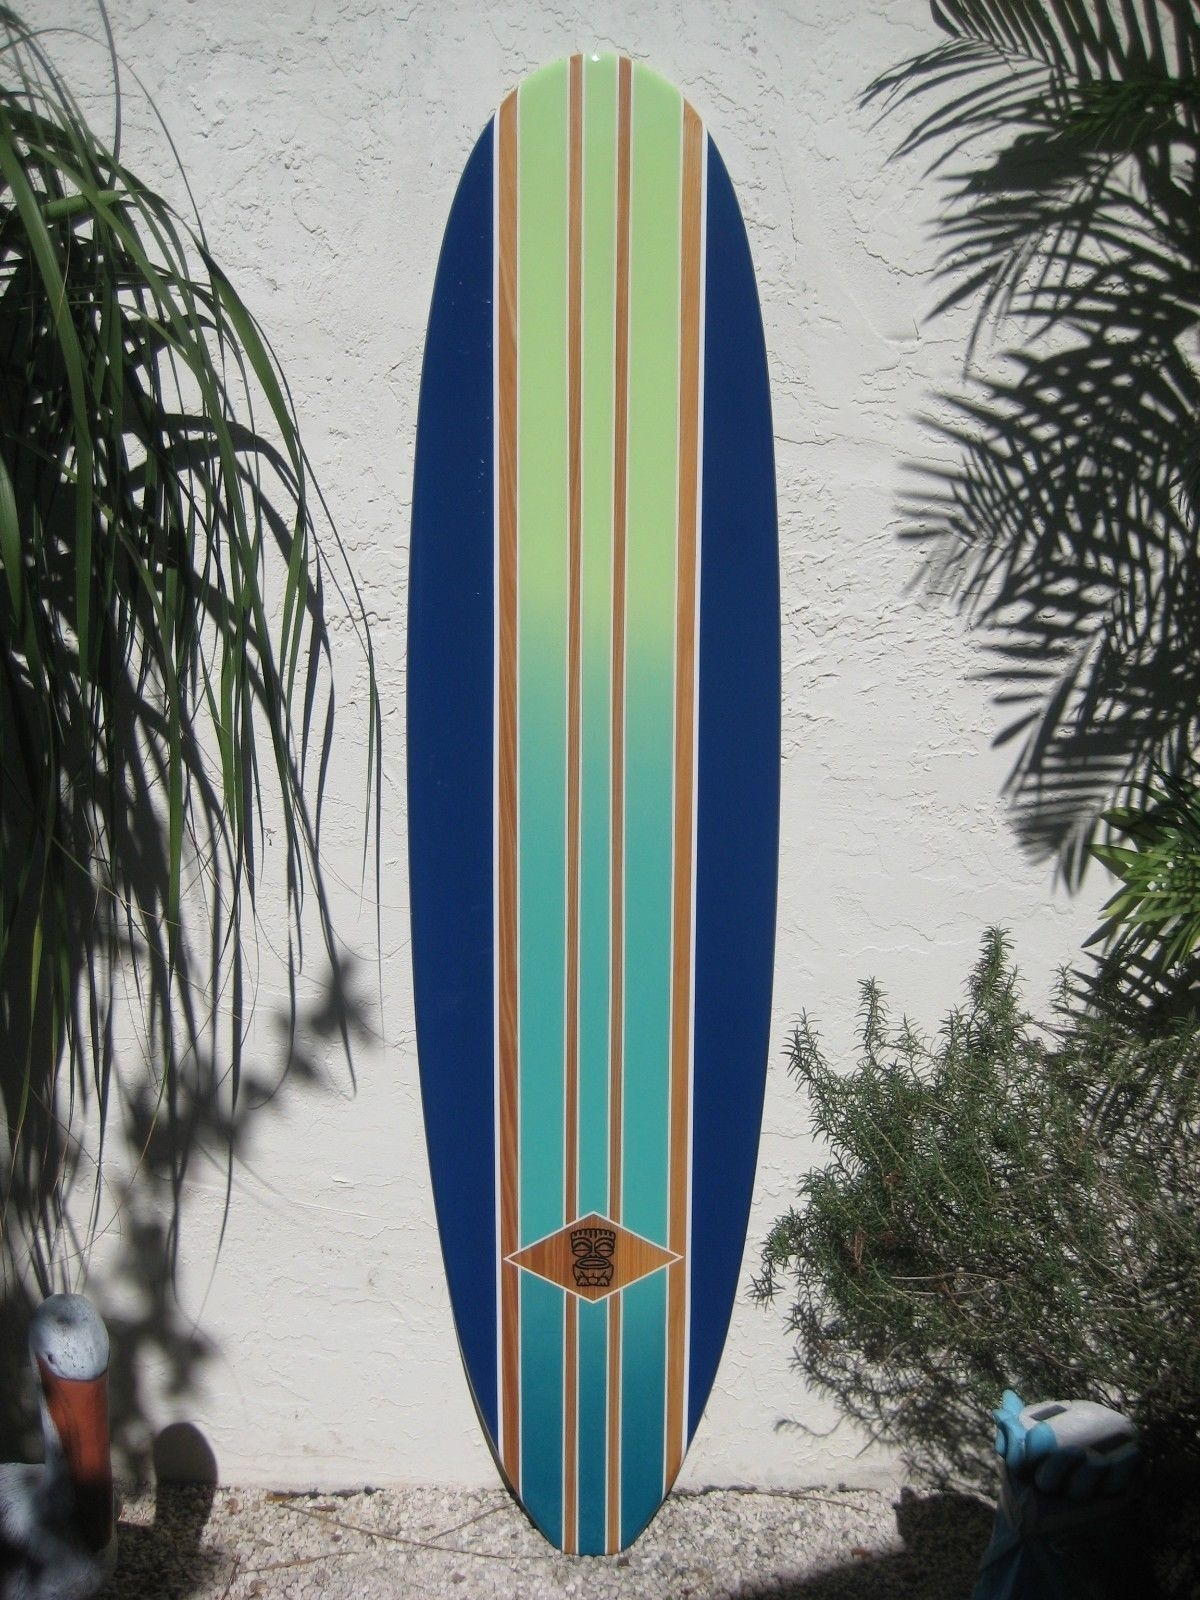 Decorative Wood Surfboard Wall Art Hawaiian Coastal Beach Home Wall With Regard To 2017 Surfboard Wall Art (View 8 of 20)